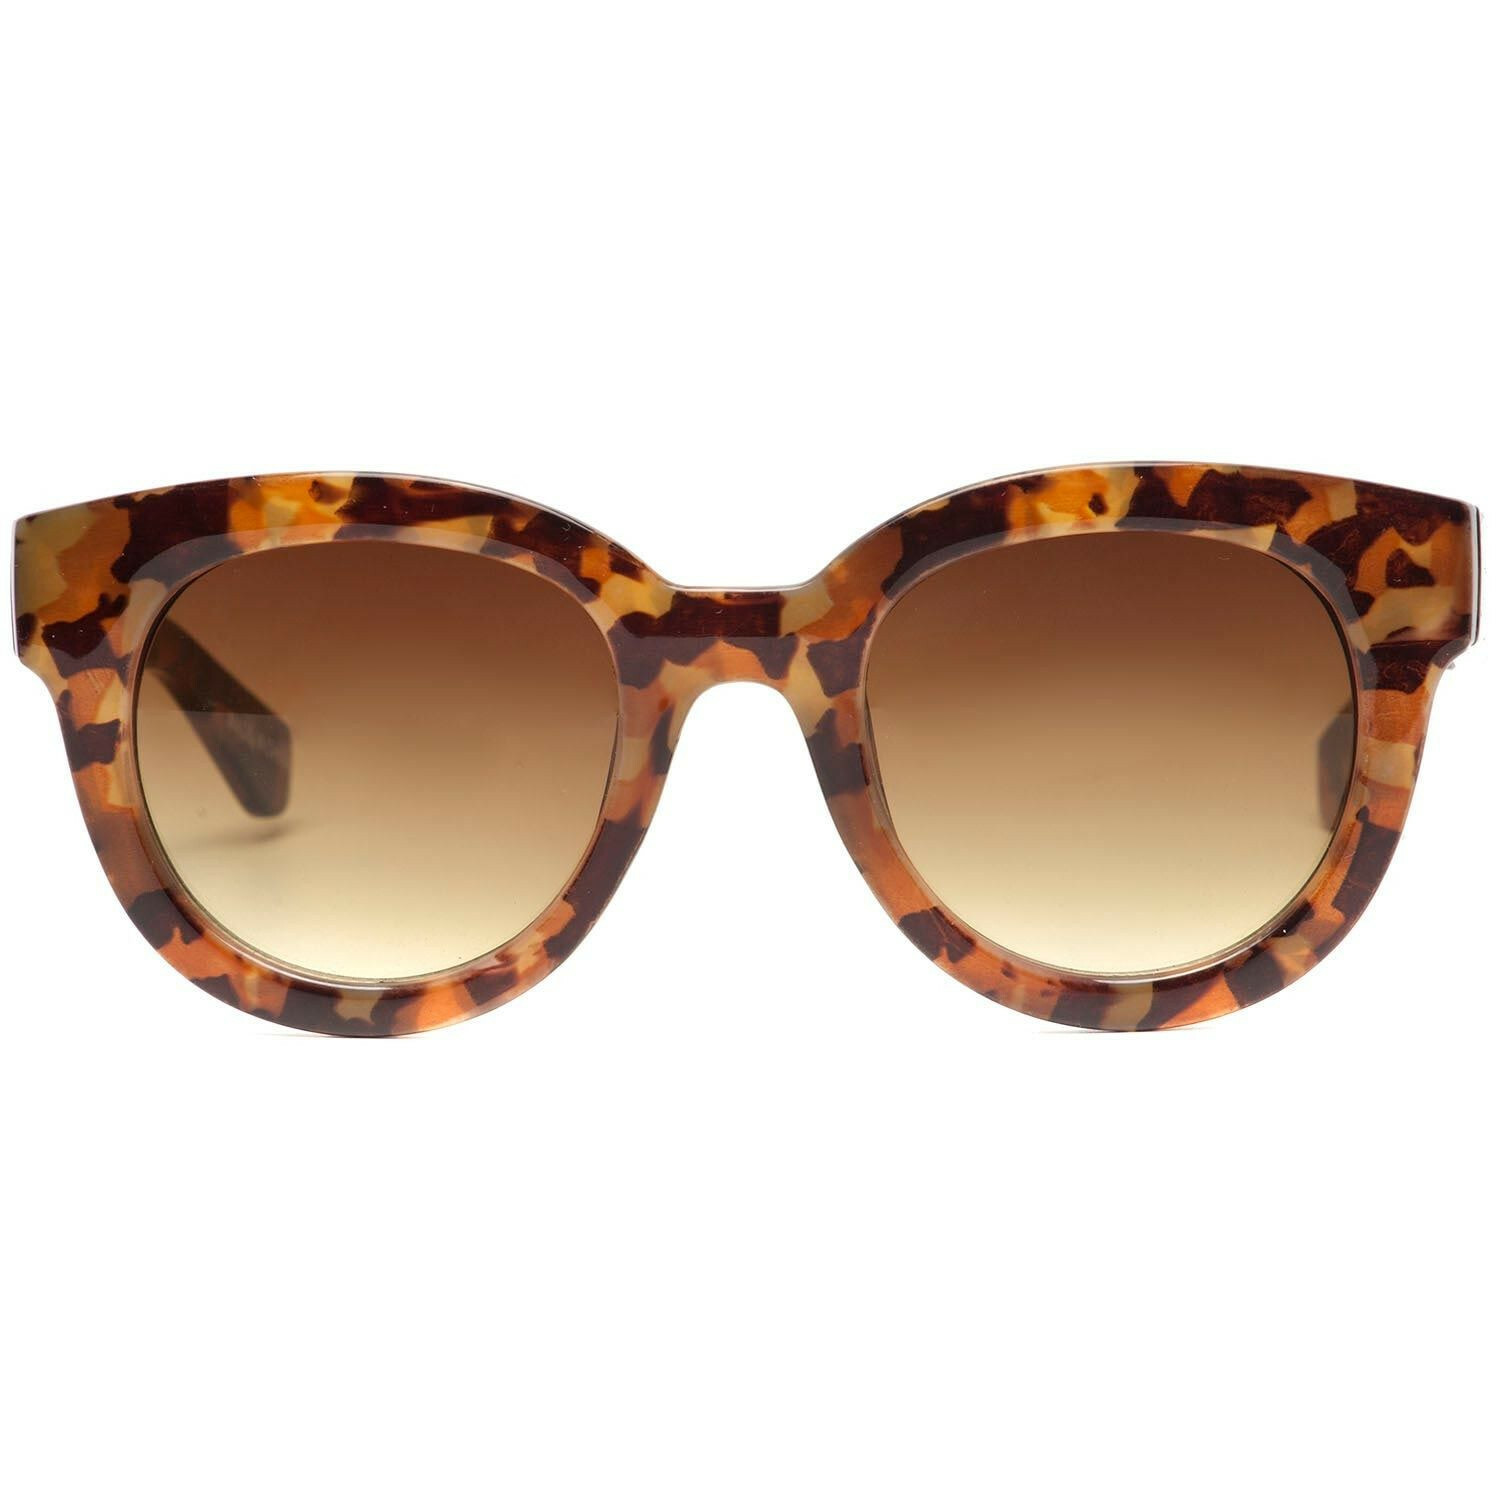 CAMOUFLAGE SUNNIES